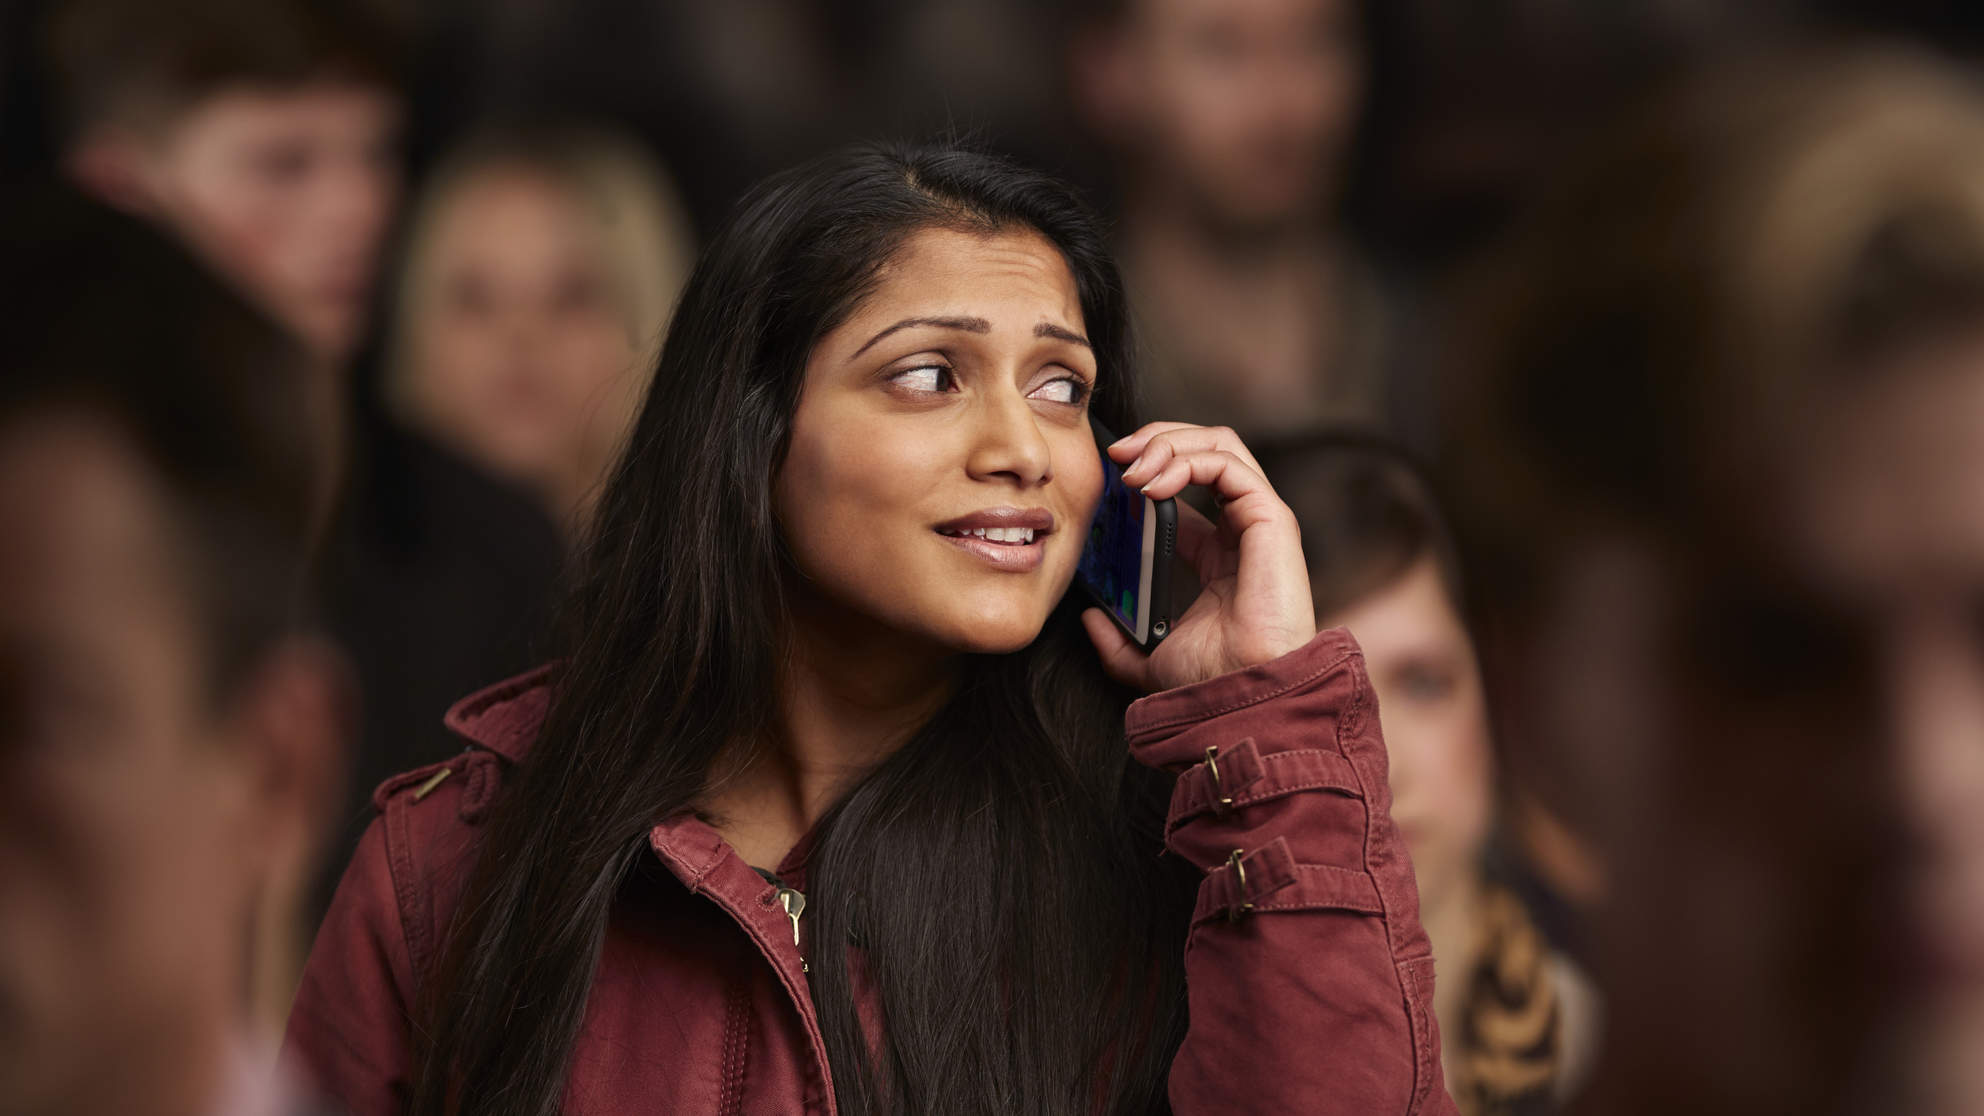 Woman on cell phone looking anxious